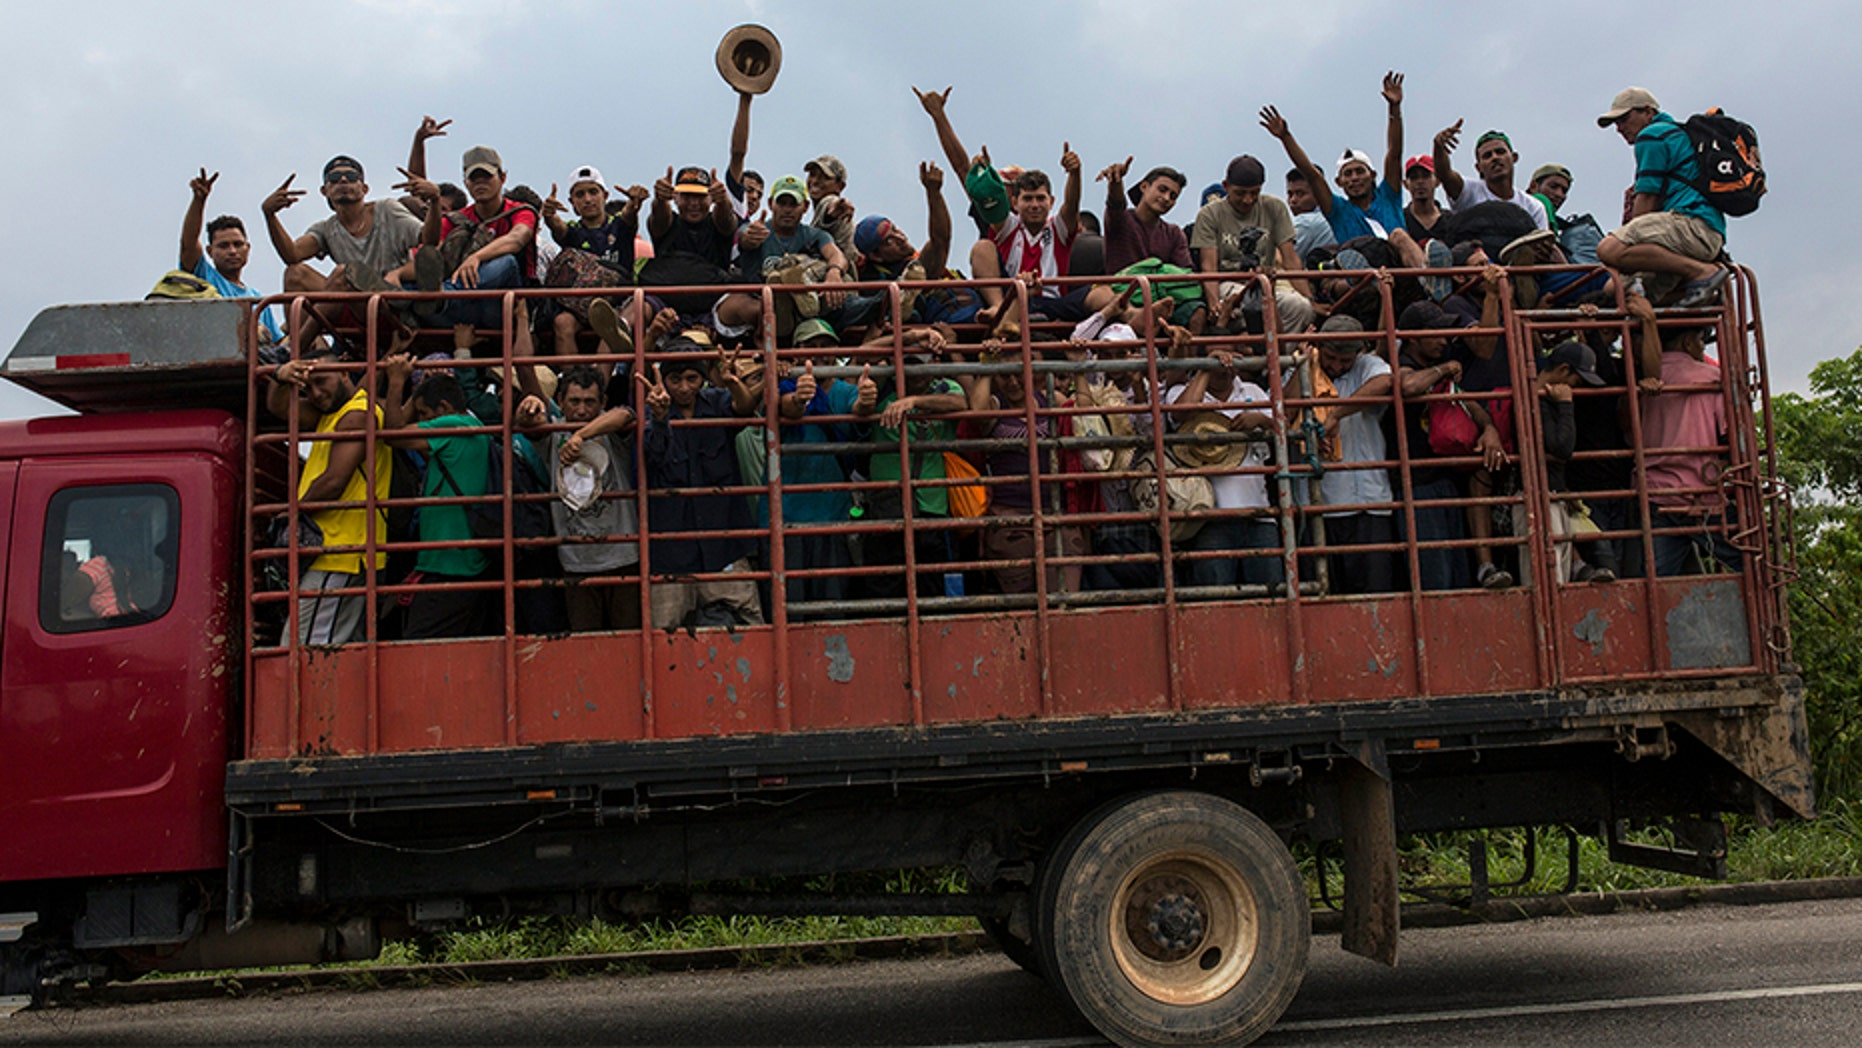 USA  immigration officials move to restrict asylum at border